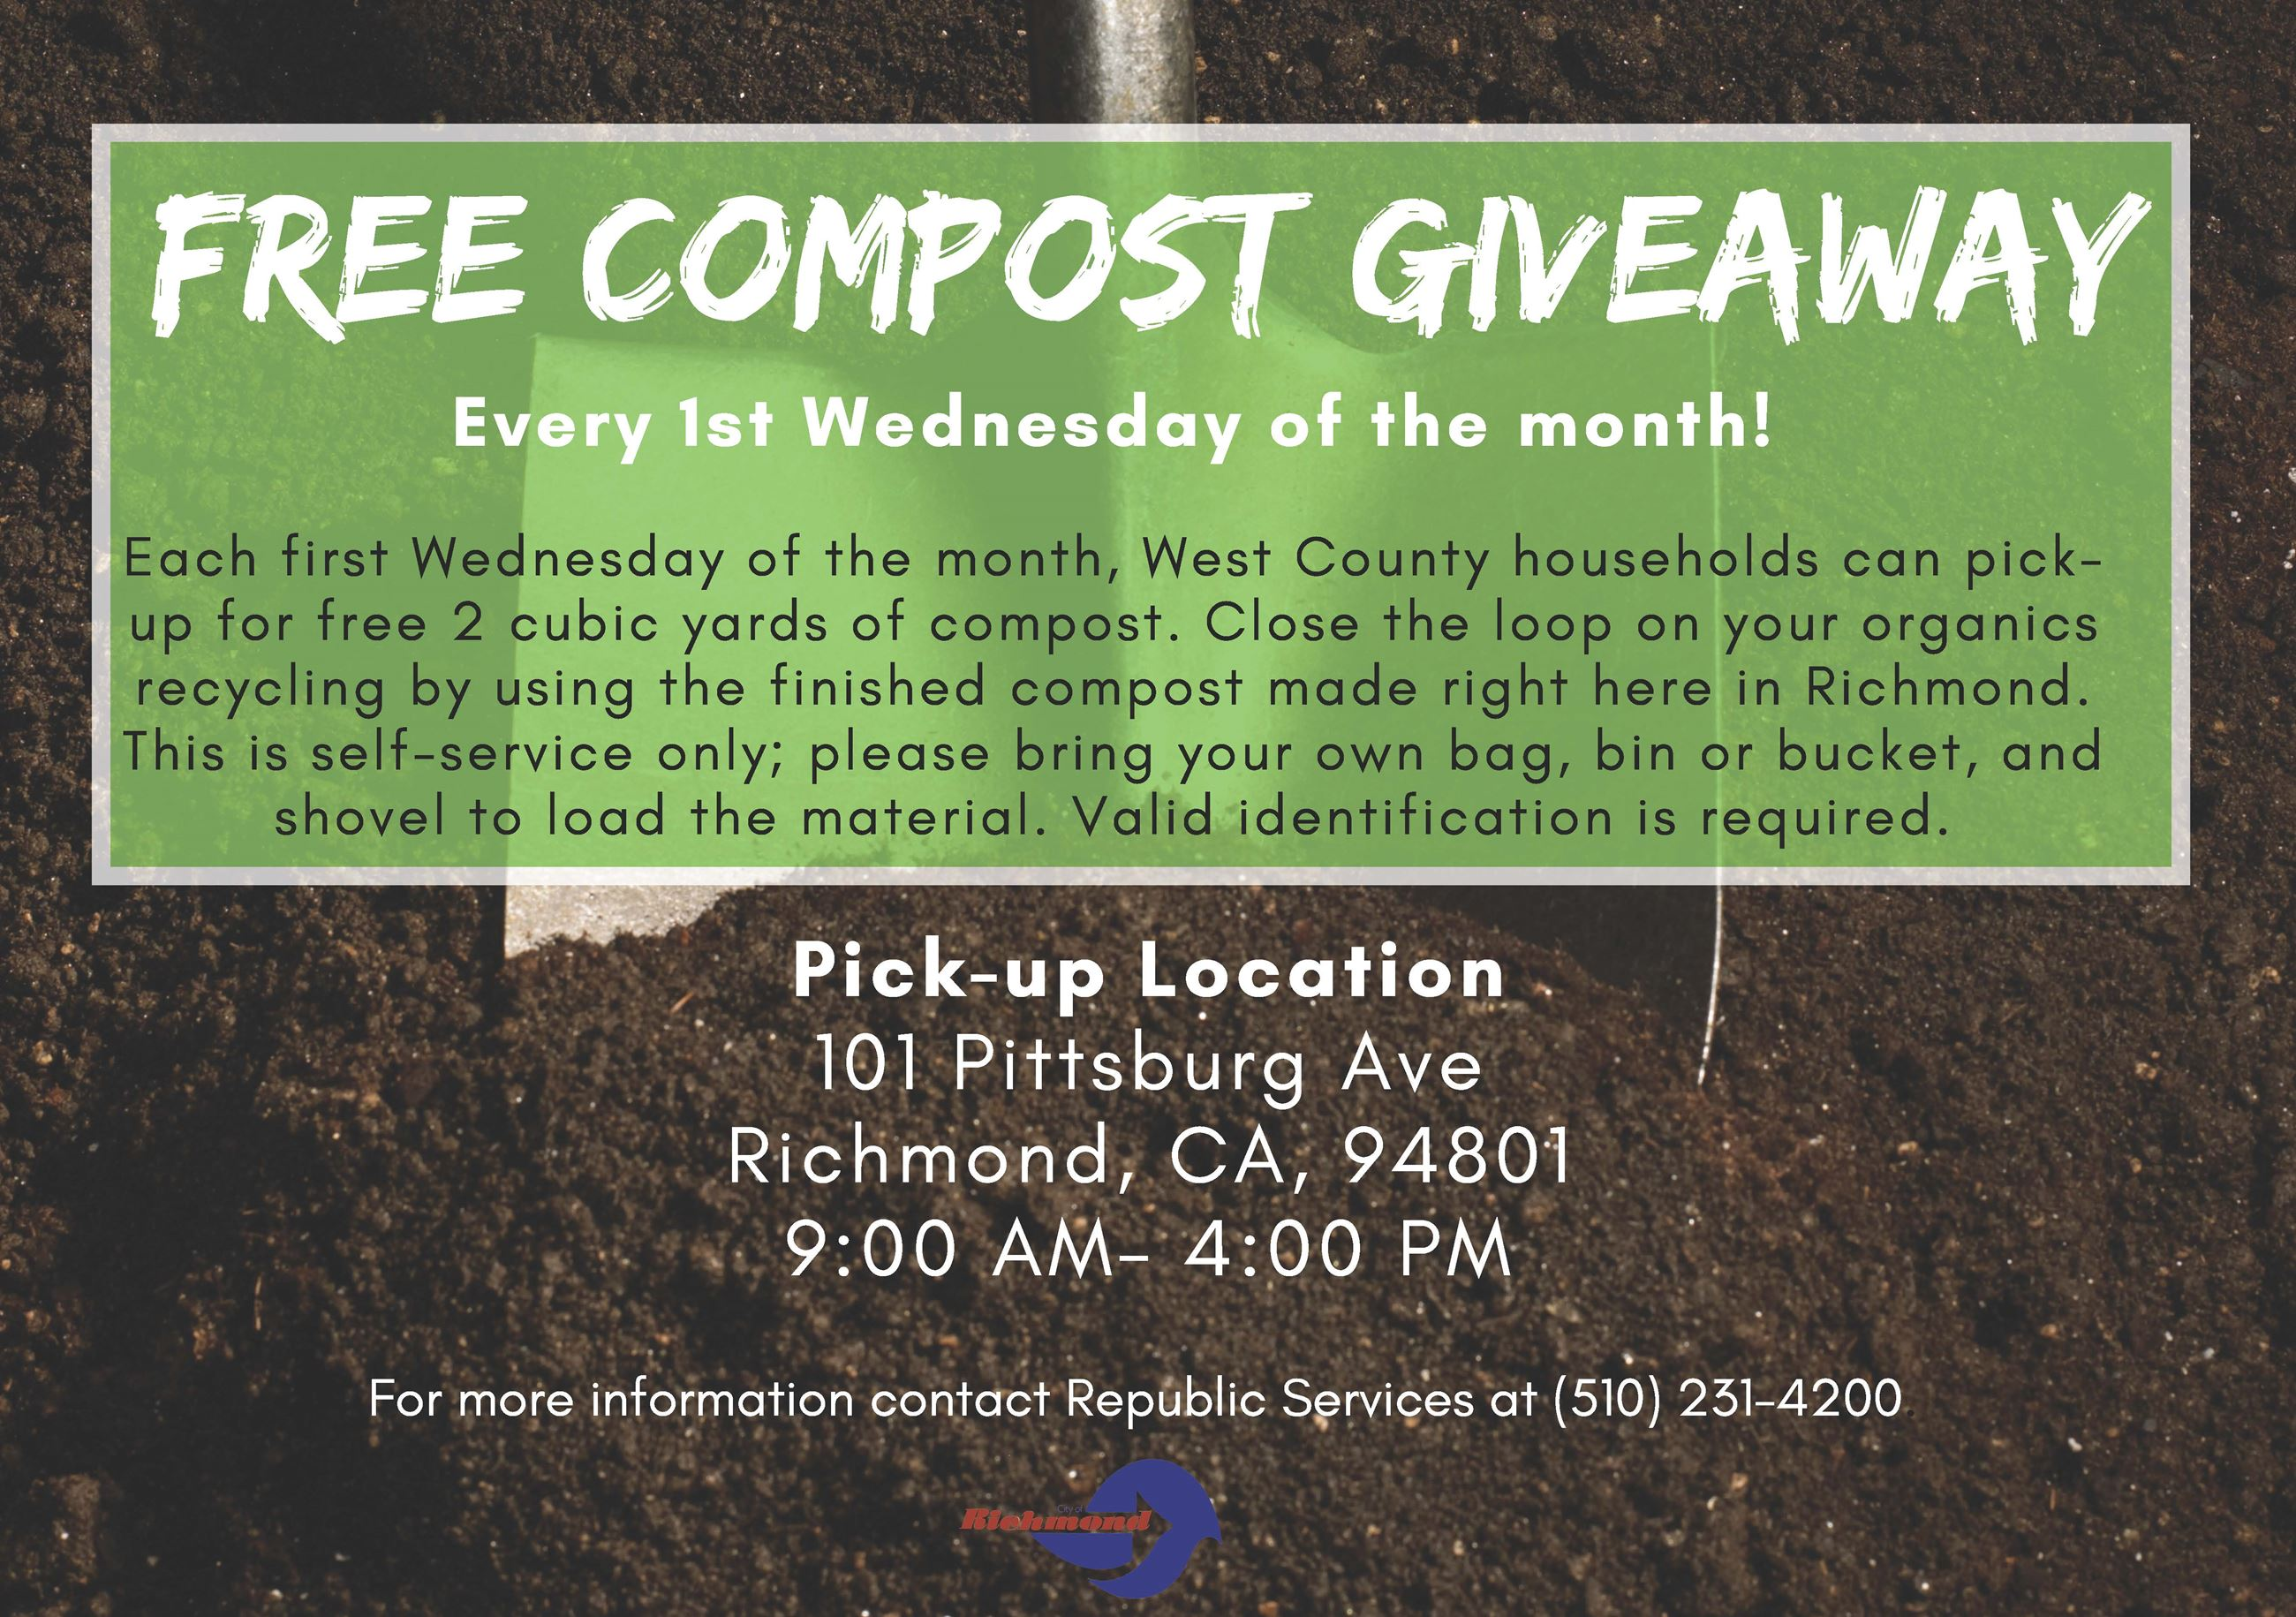 Free Compost Giveaway 1st wed 2019